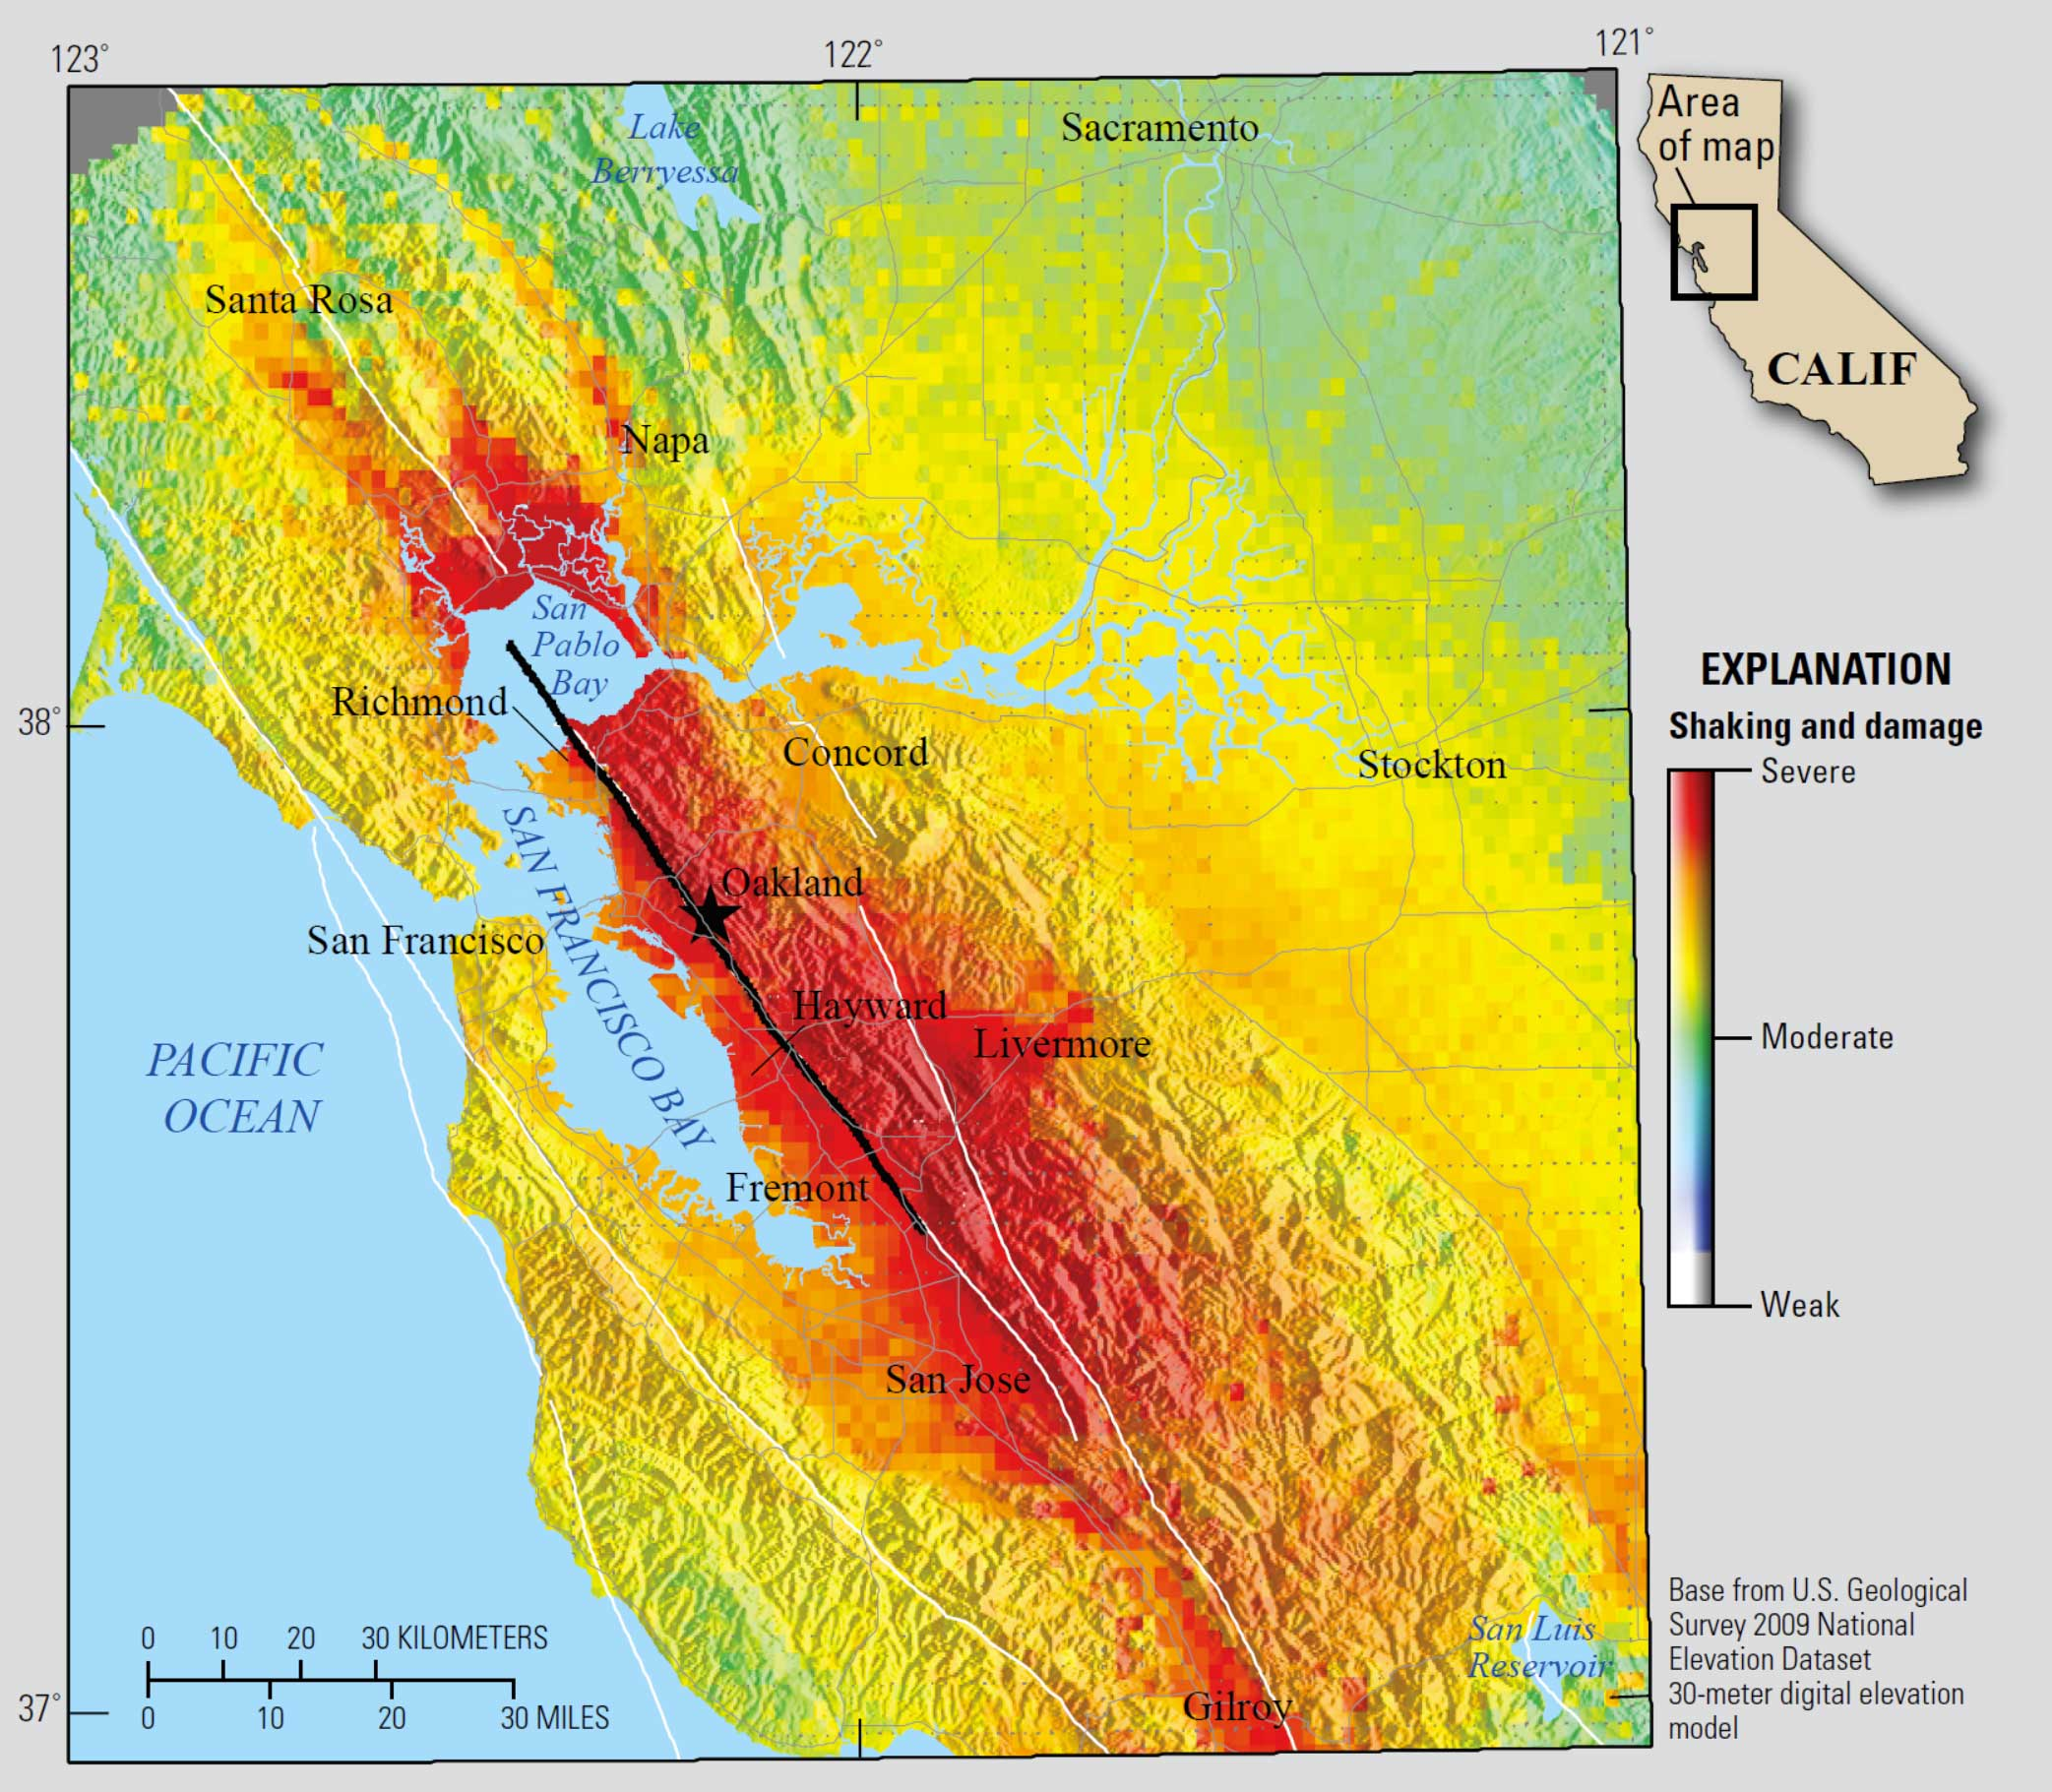 Seismic Swarm Hits Hayward Fault What Does It Portend Temblor Net Greenland) are currently not covered by a hazard model. seismic swarm hits hayward fault what